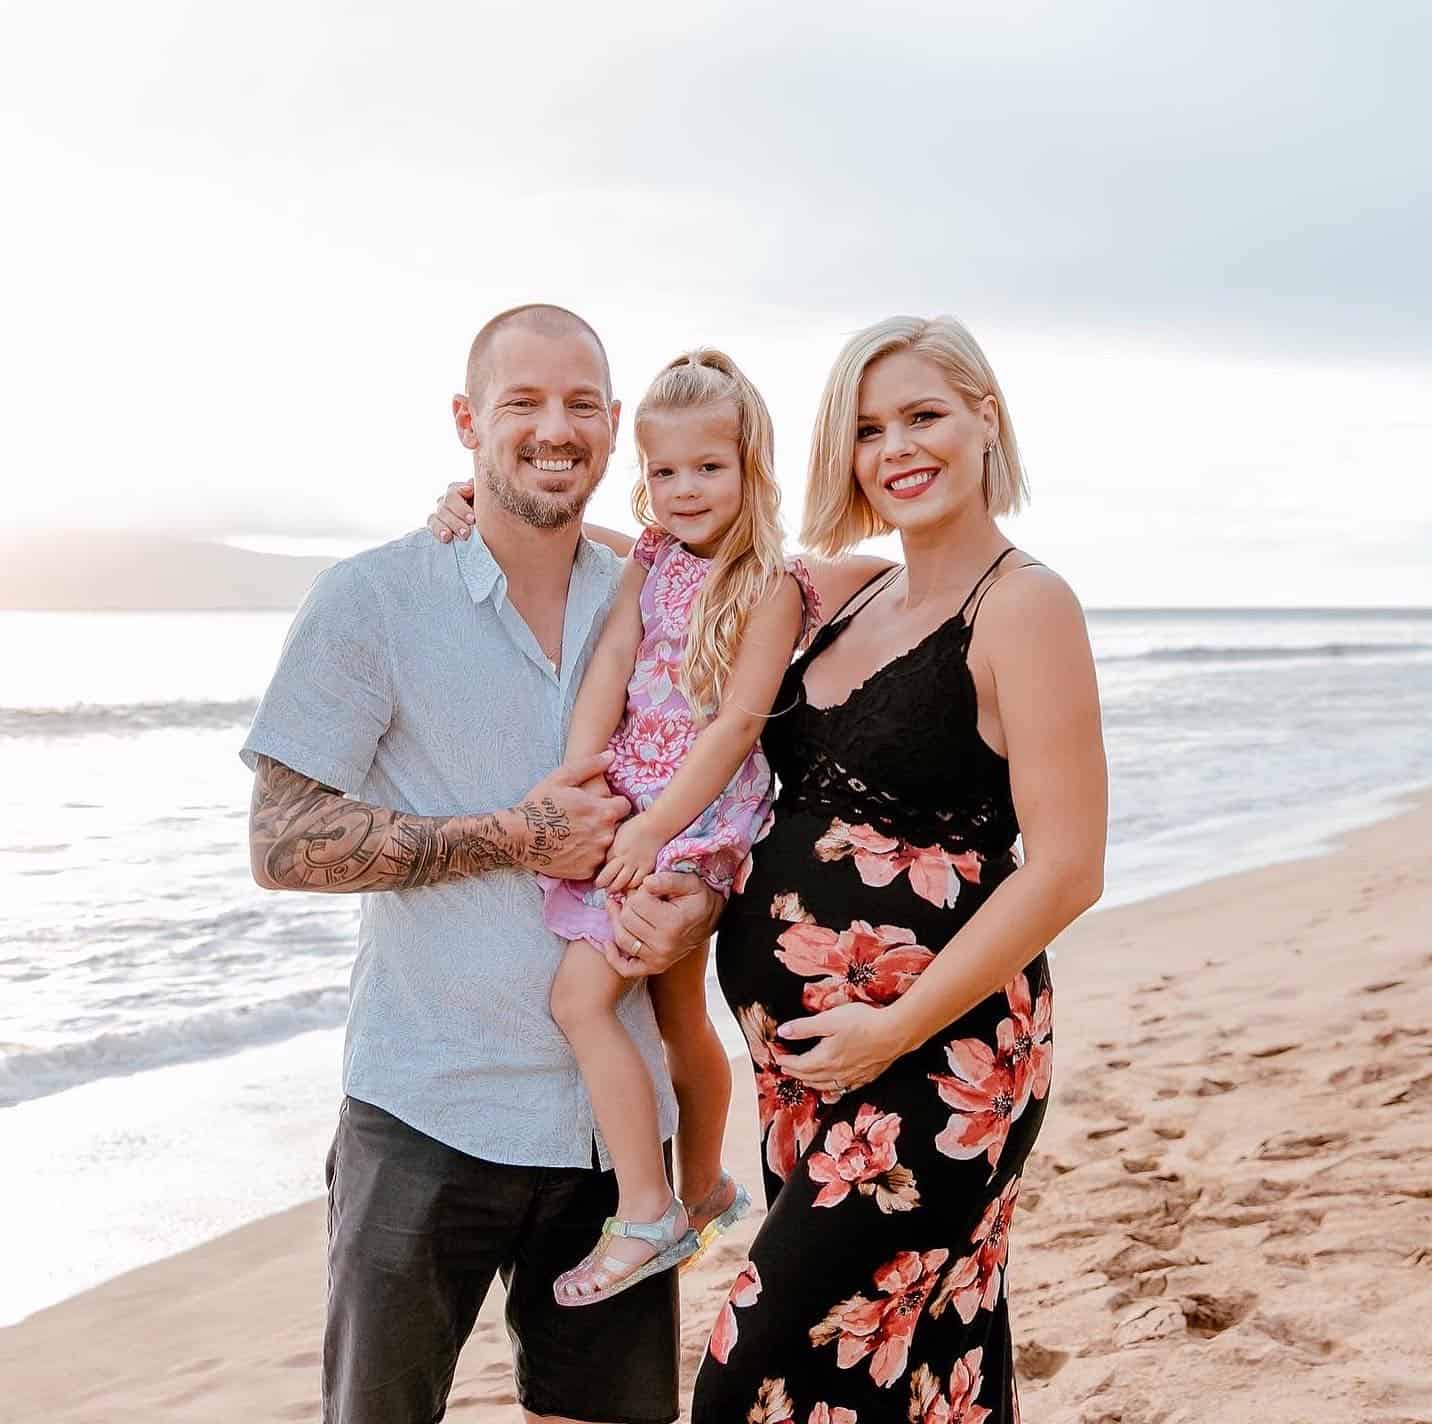 Kim standing on beach with husband and daughter